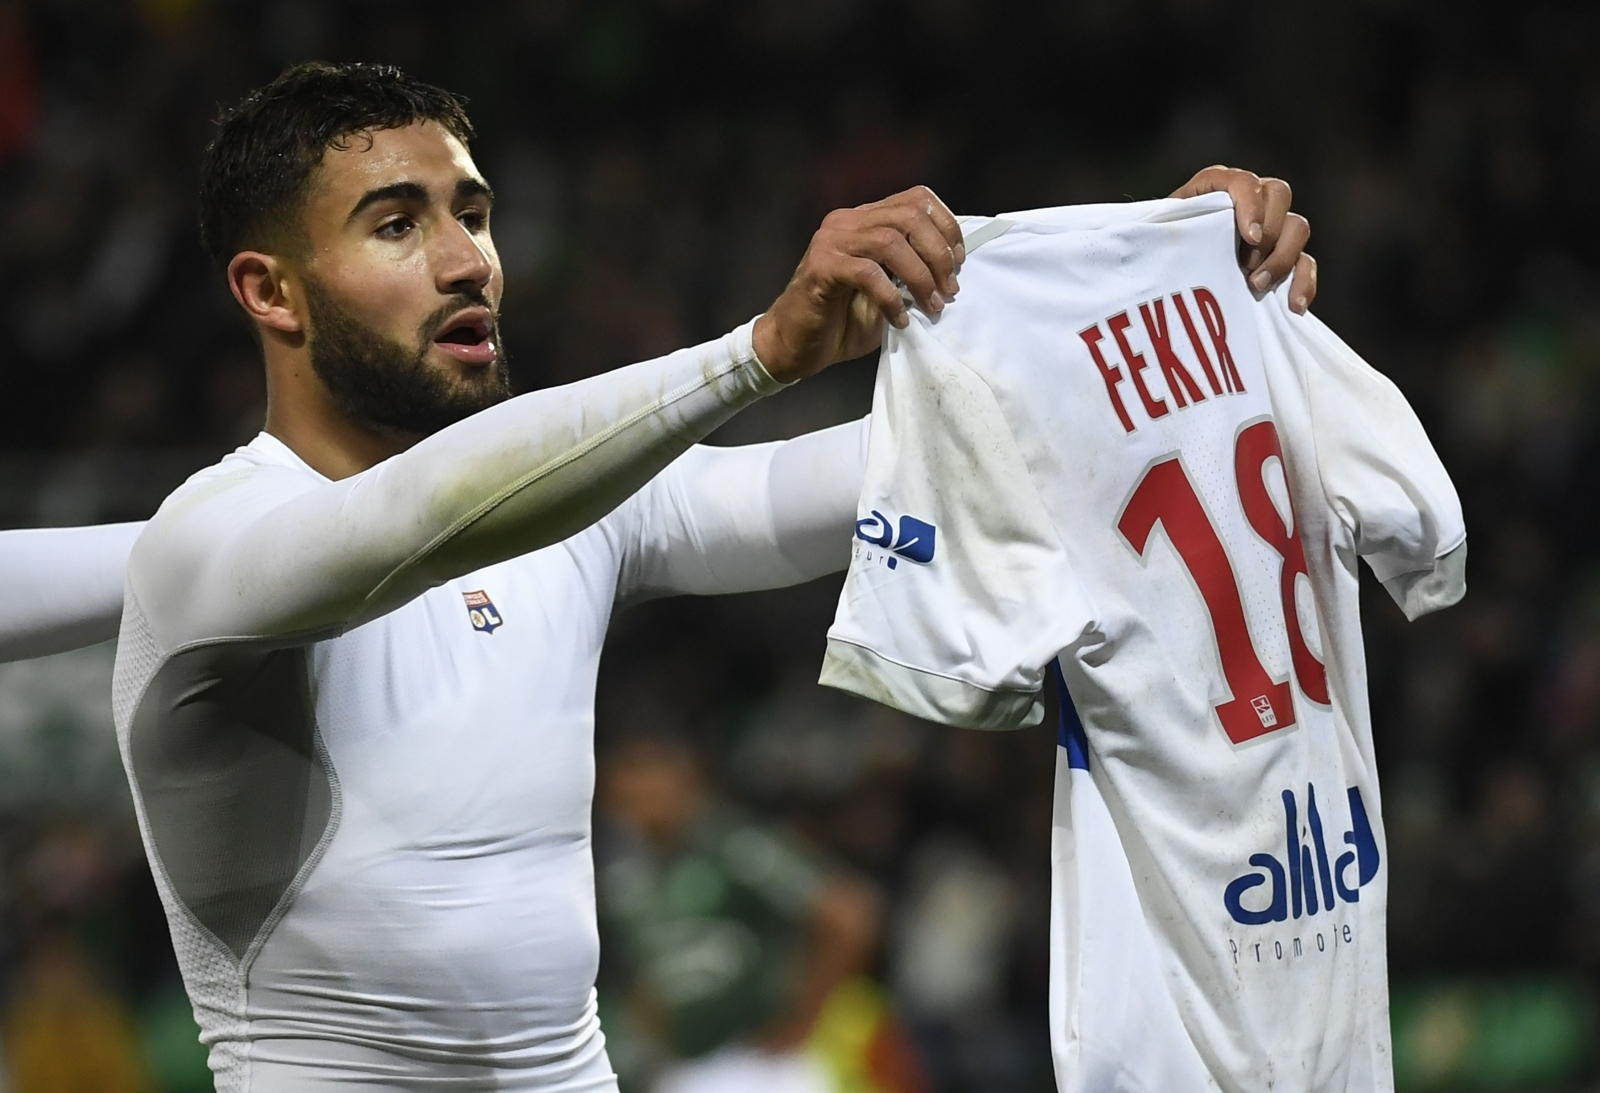 Fekir staying with Lyon - Aulas